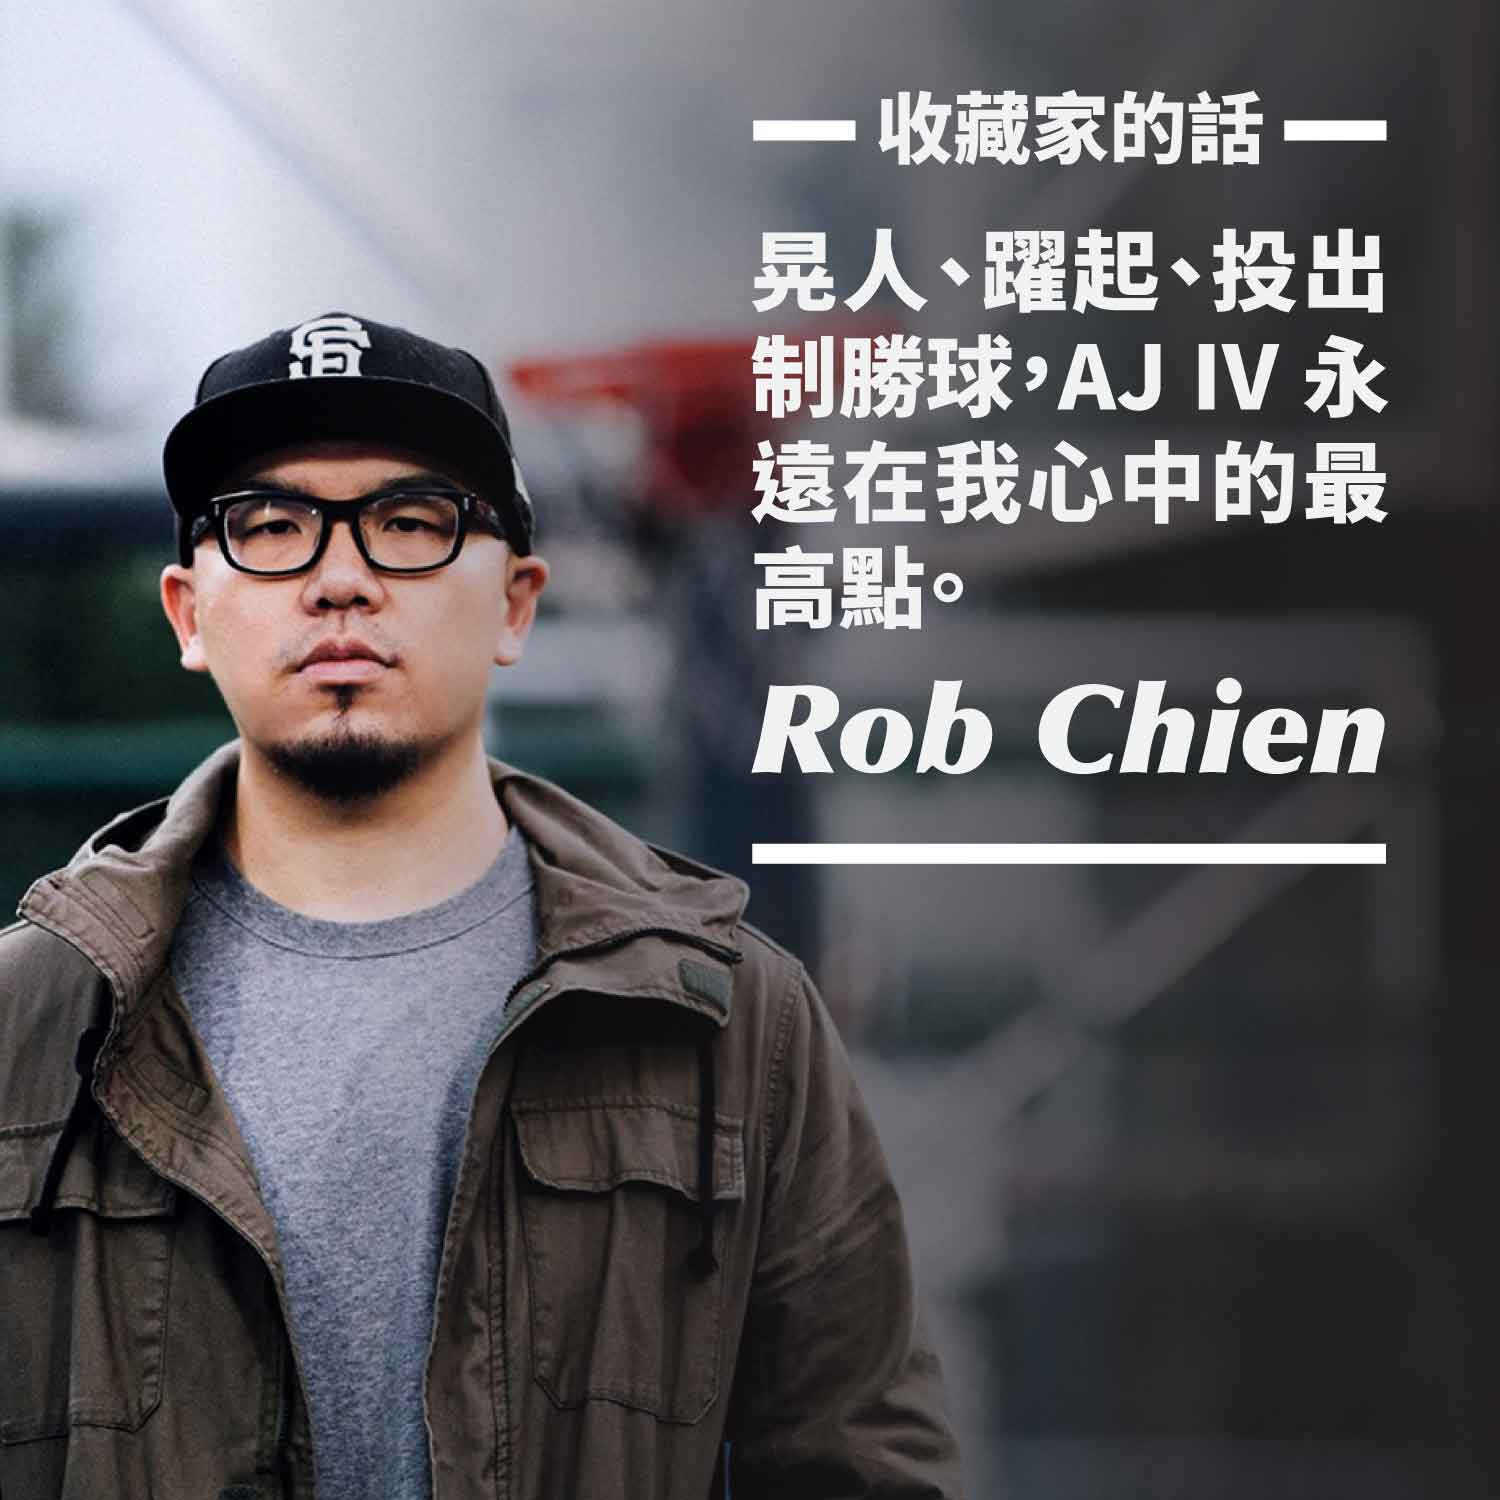 rob-chien-quote